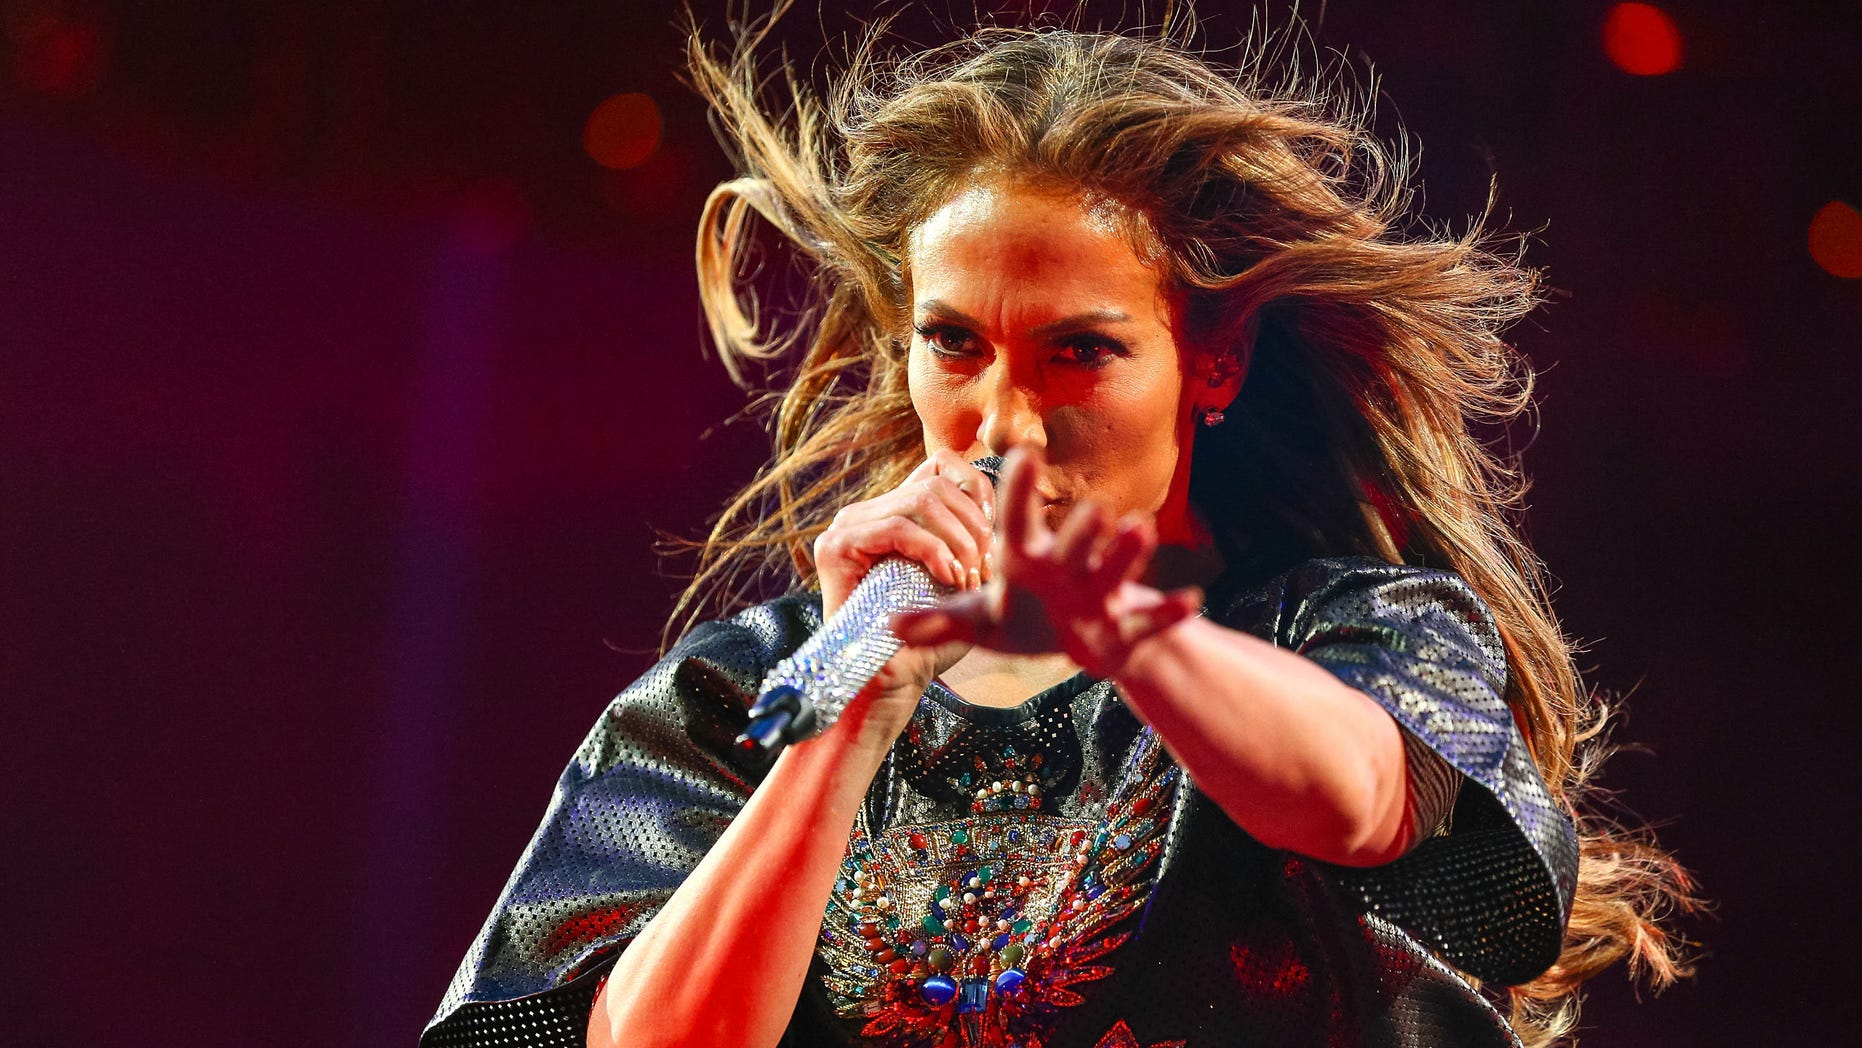 Jennifer Lopez onstage at Power 106 FM's Powerhouse at Honda Center on May 17, 2014 in Anaheim, California.